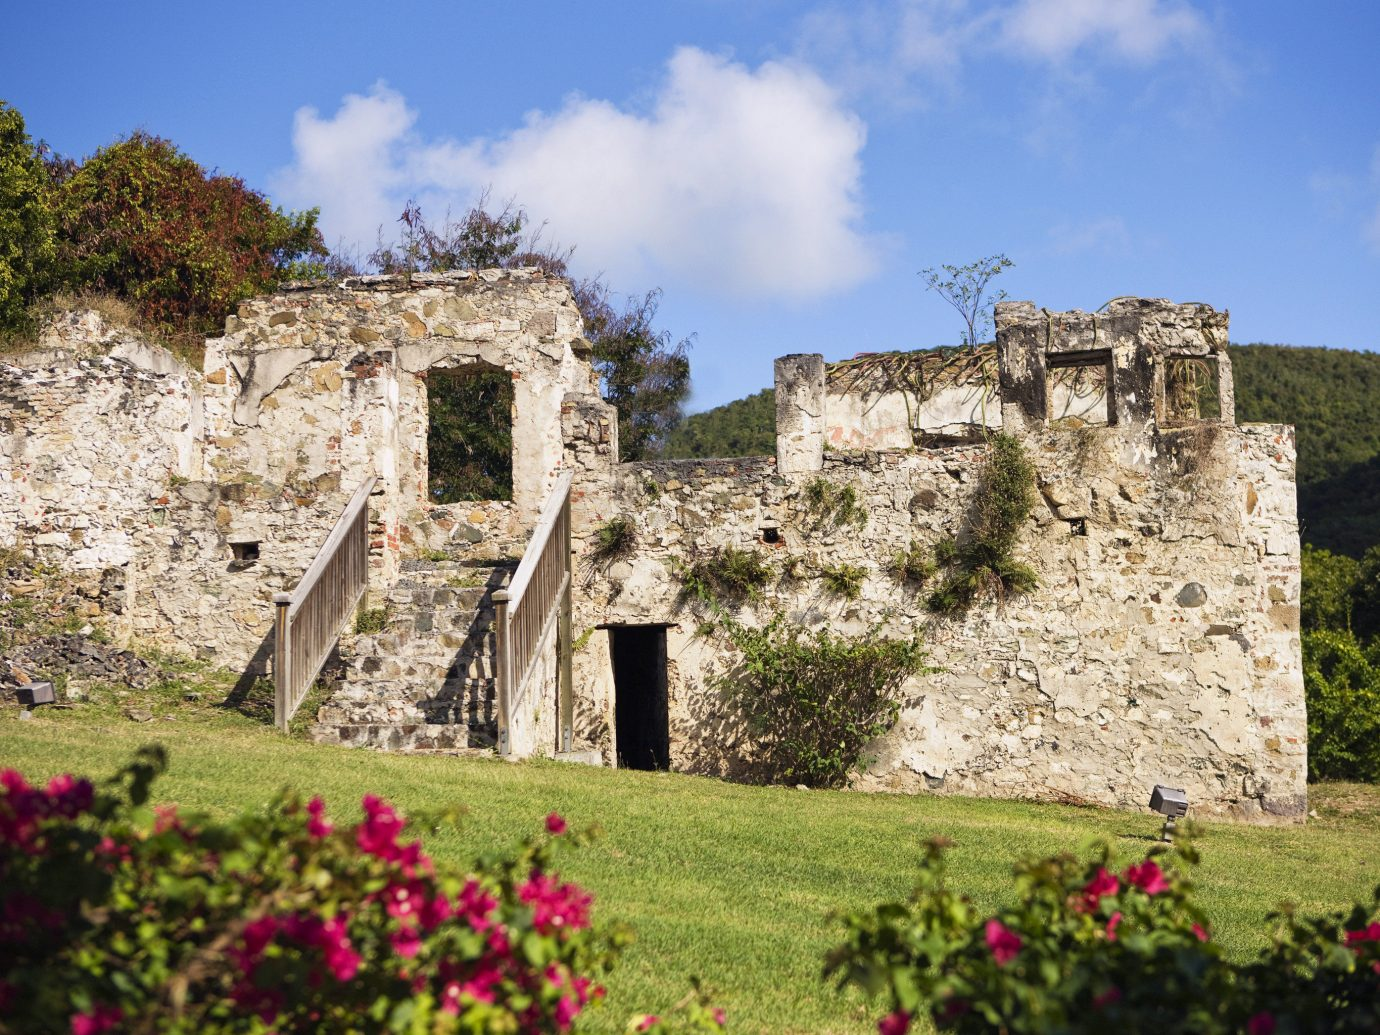 Eco Family Hotels Landmarks Luxury Resort Romance Romantic Tropical grass sky outdoor flower building Ruins stone field rock historic site archaeological site castle fortification tourism ancient history brick Village rural area monastery château abbey old ruin structure Garden